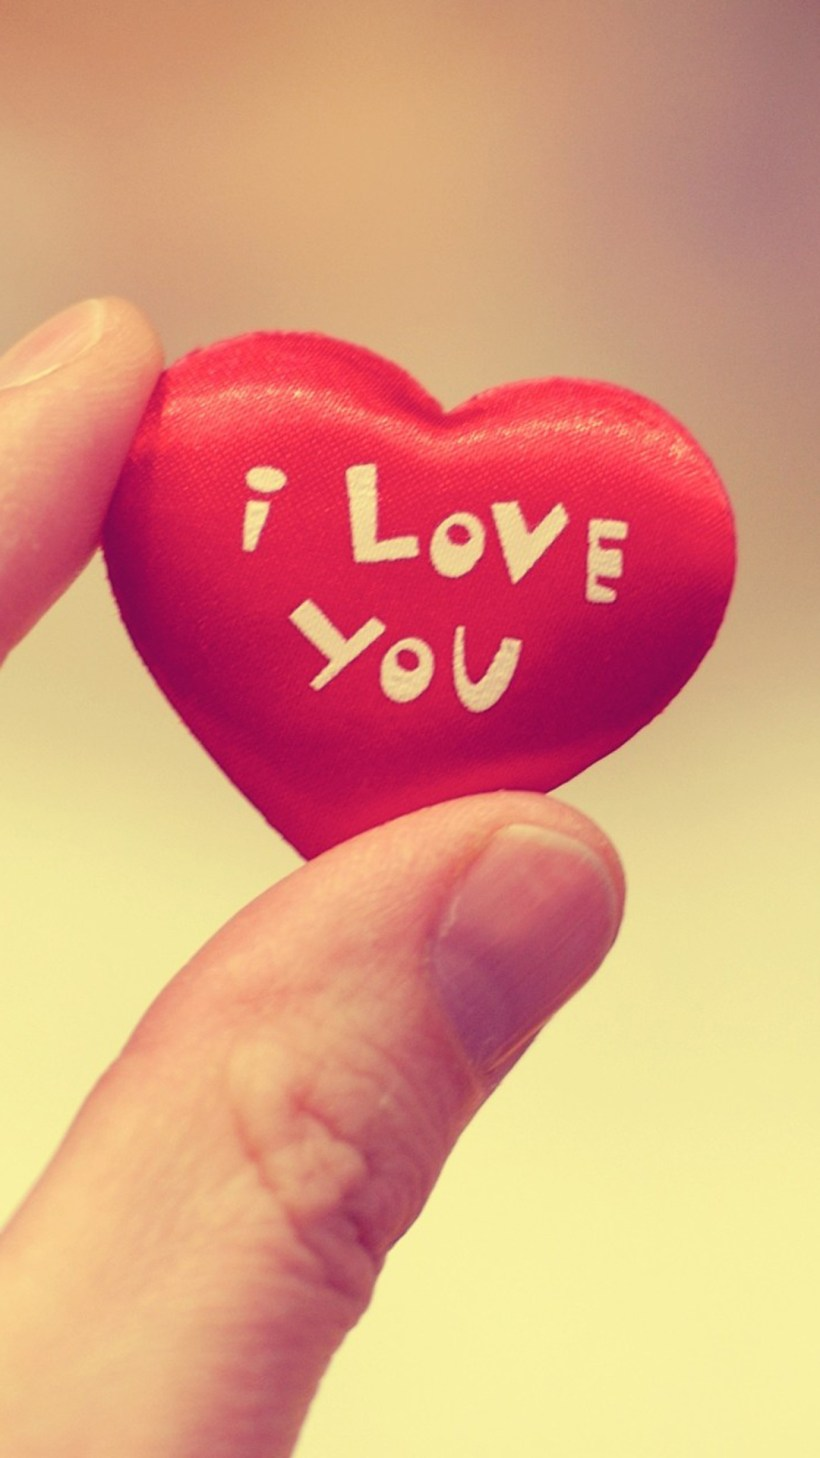 cute I Love U Wallpaper For Mobile : cute I Love U Wallpapers For Mobile Wallpaper Images